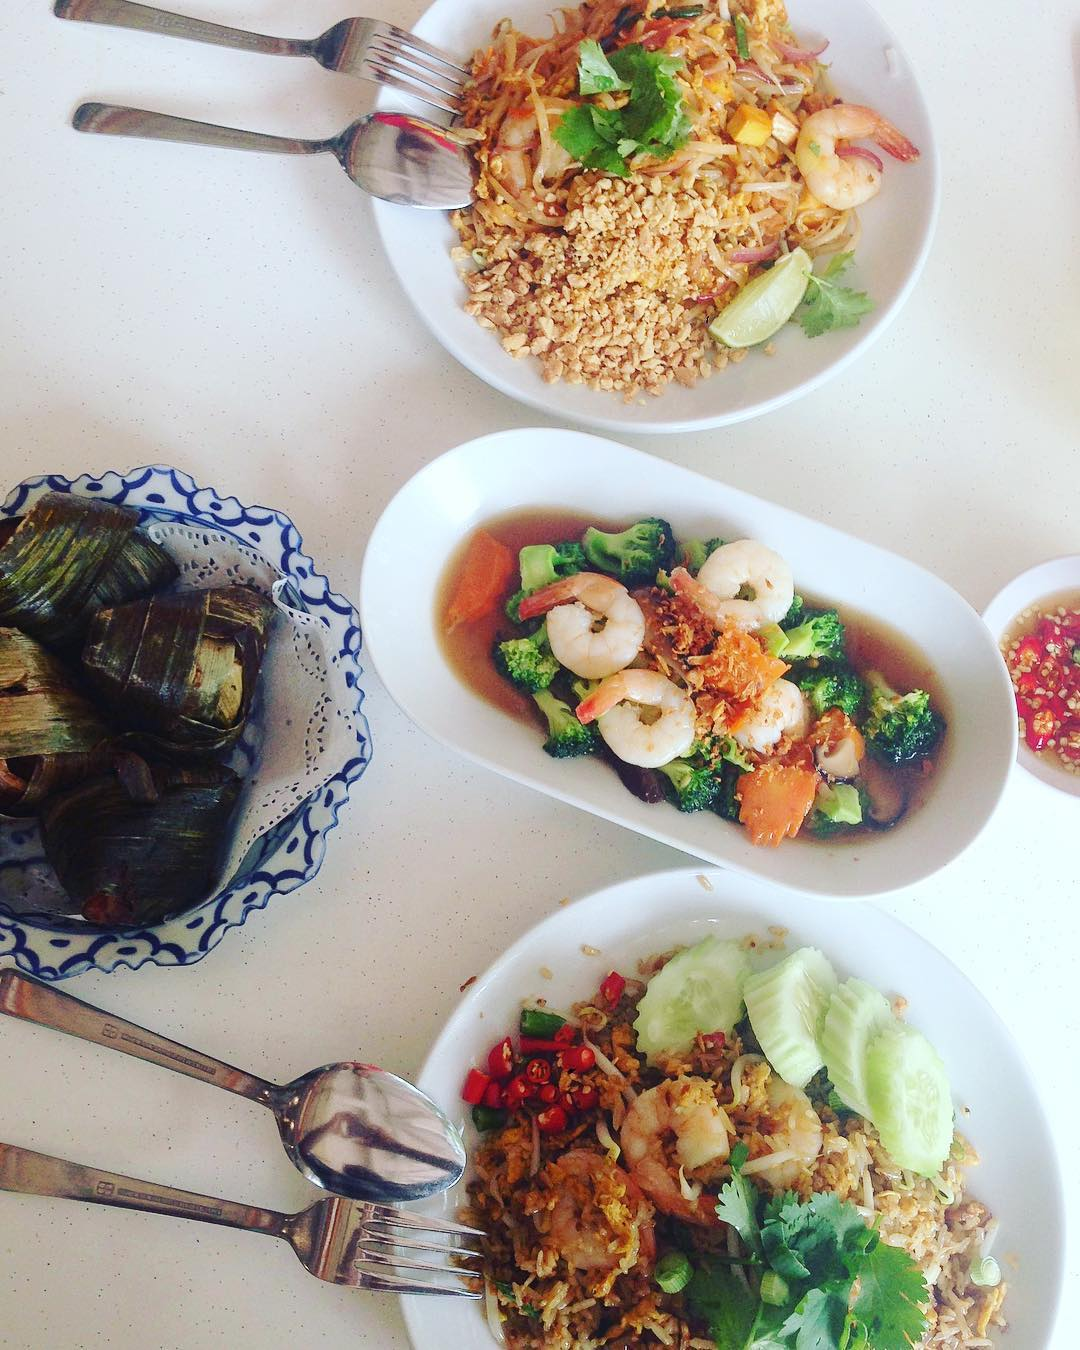 Affordable Thai Food - Nangfa Thai Kitchen